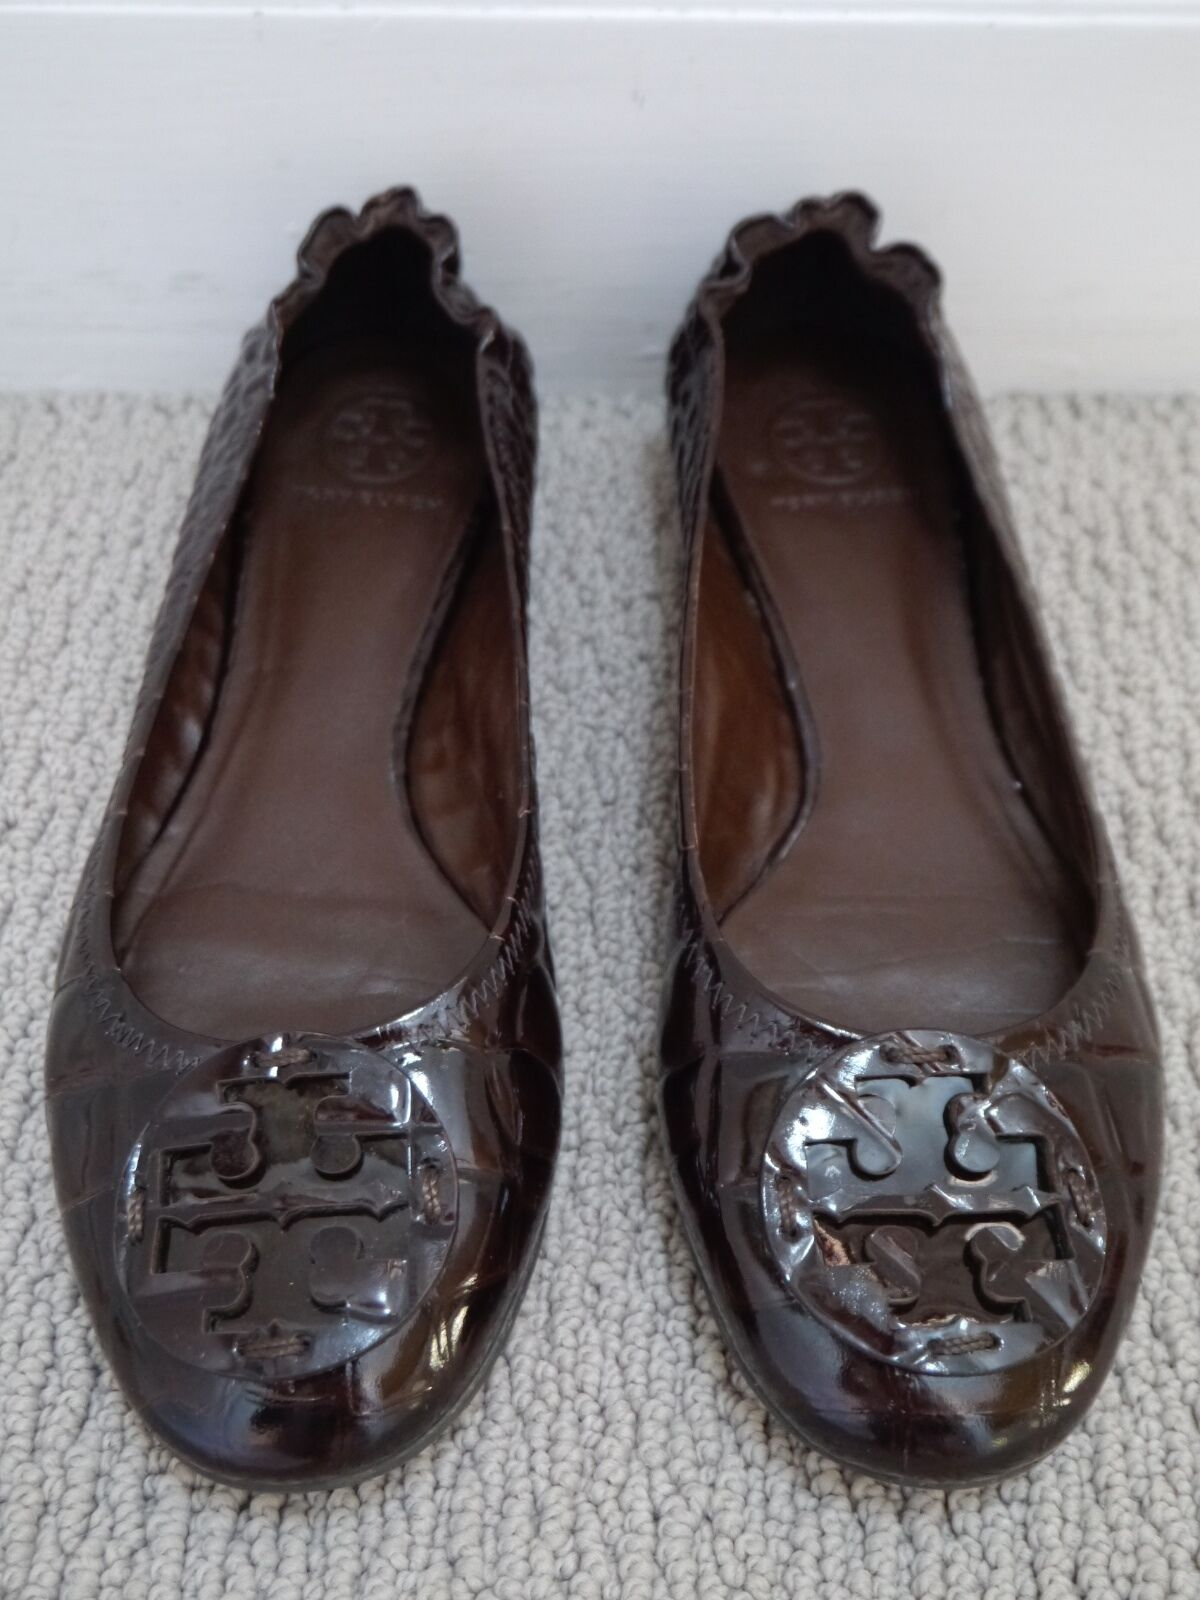 TORY BURCH Reva croc brown patent leather logo detail ballet flats shoes 10.5